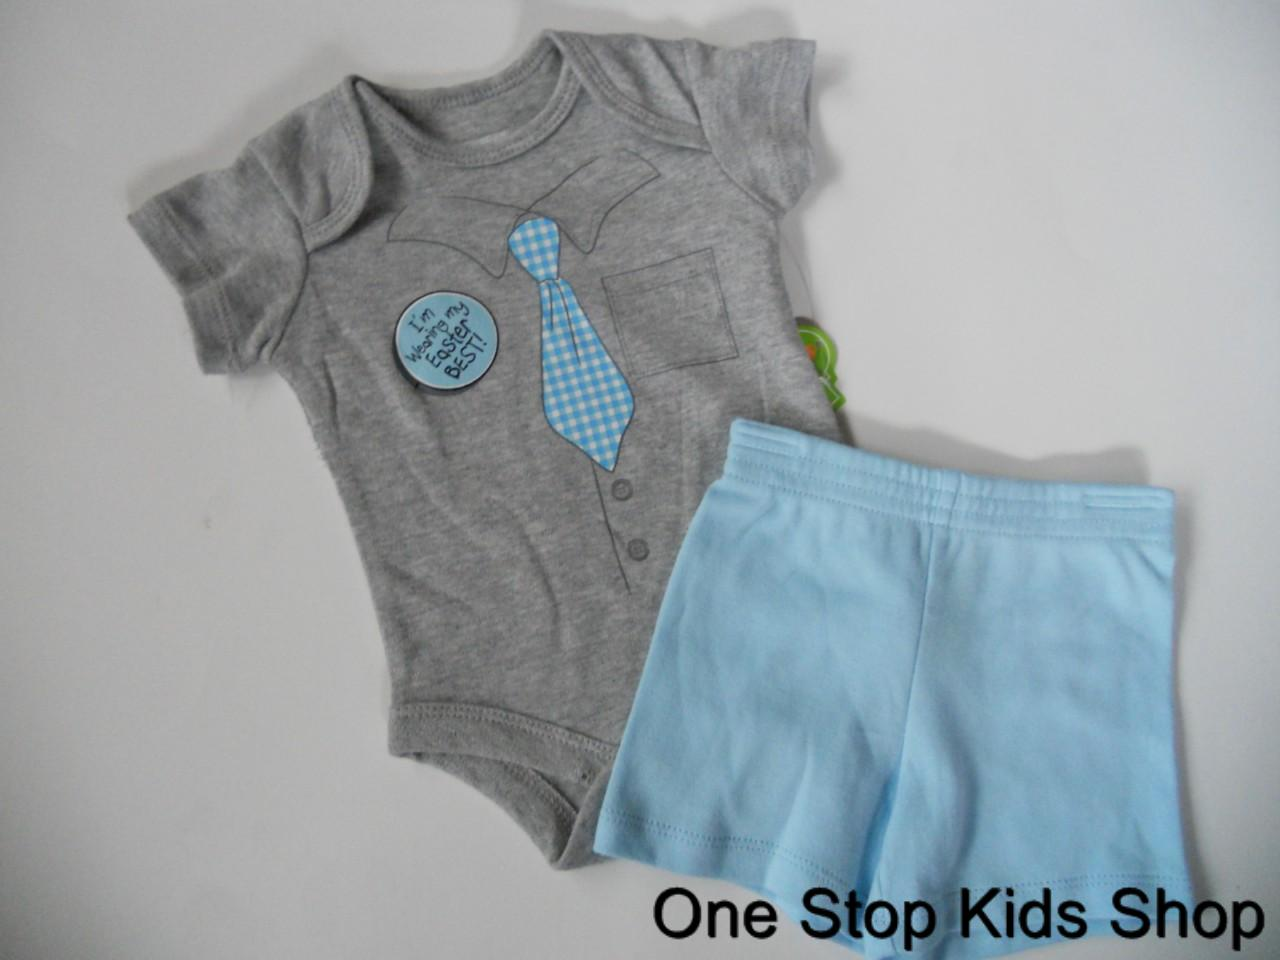 Hooray! Mud Pie has introduced a month size for baby girl apparel and here at My Baby Pie, we are carrying the complete line of the new month size for baby girls.